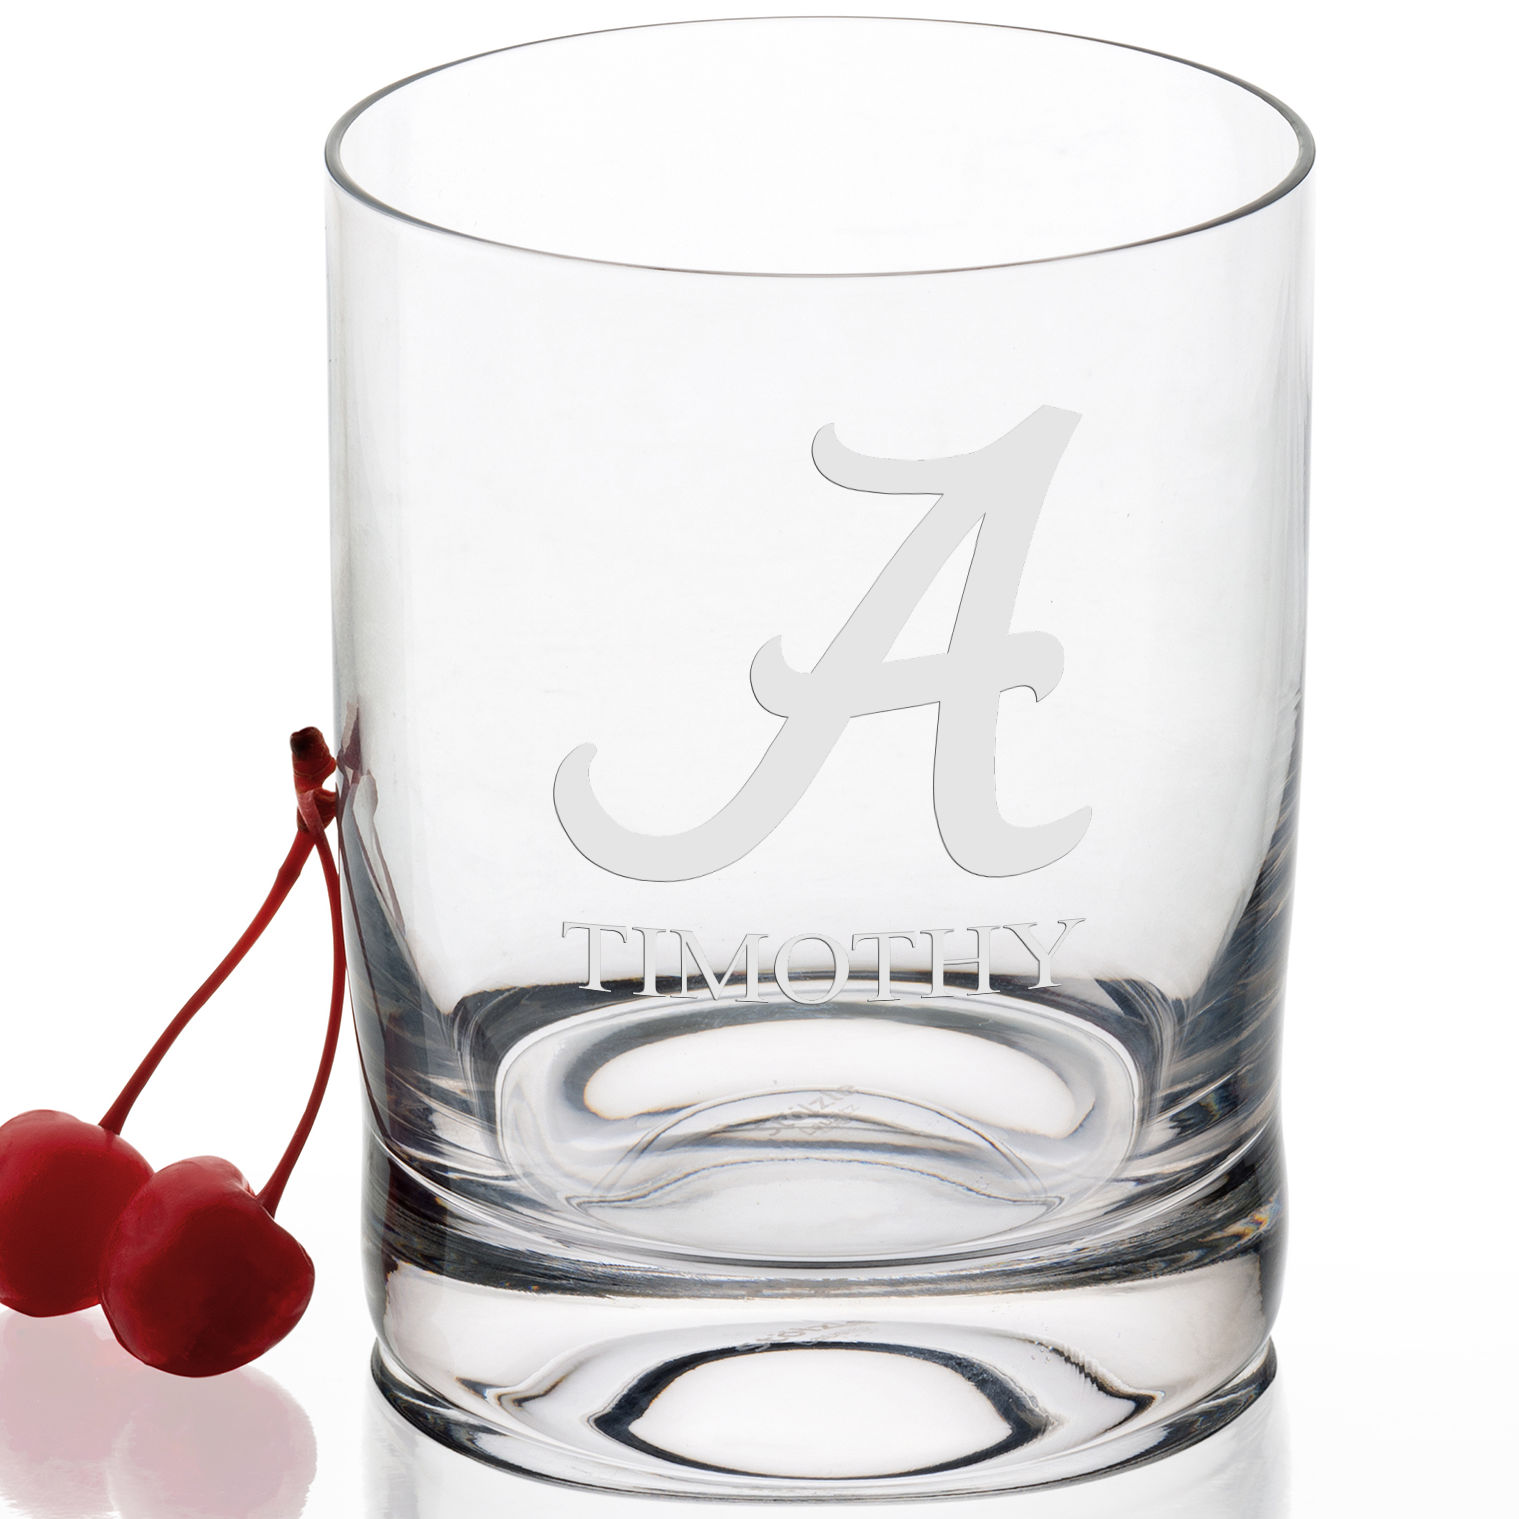 Alabama Tumbler Glasses - Set of 4